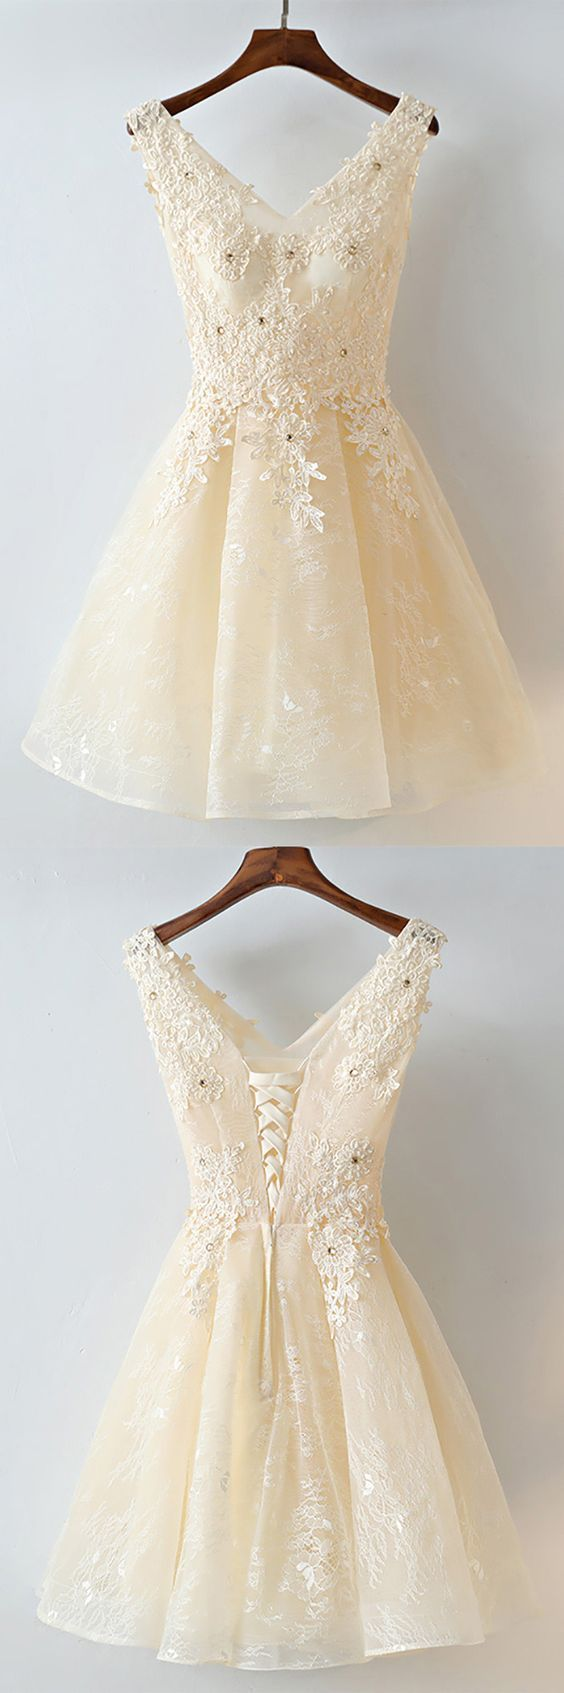 6967fd1c0845 Gorgeous Champagne Short Lace Homecoming Party Dress Sleeveless ...